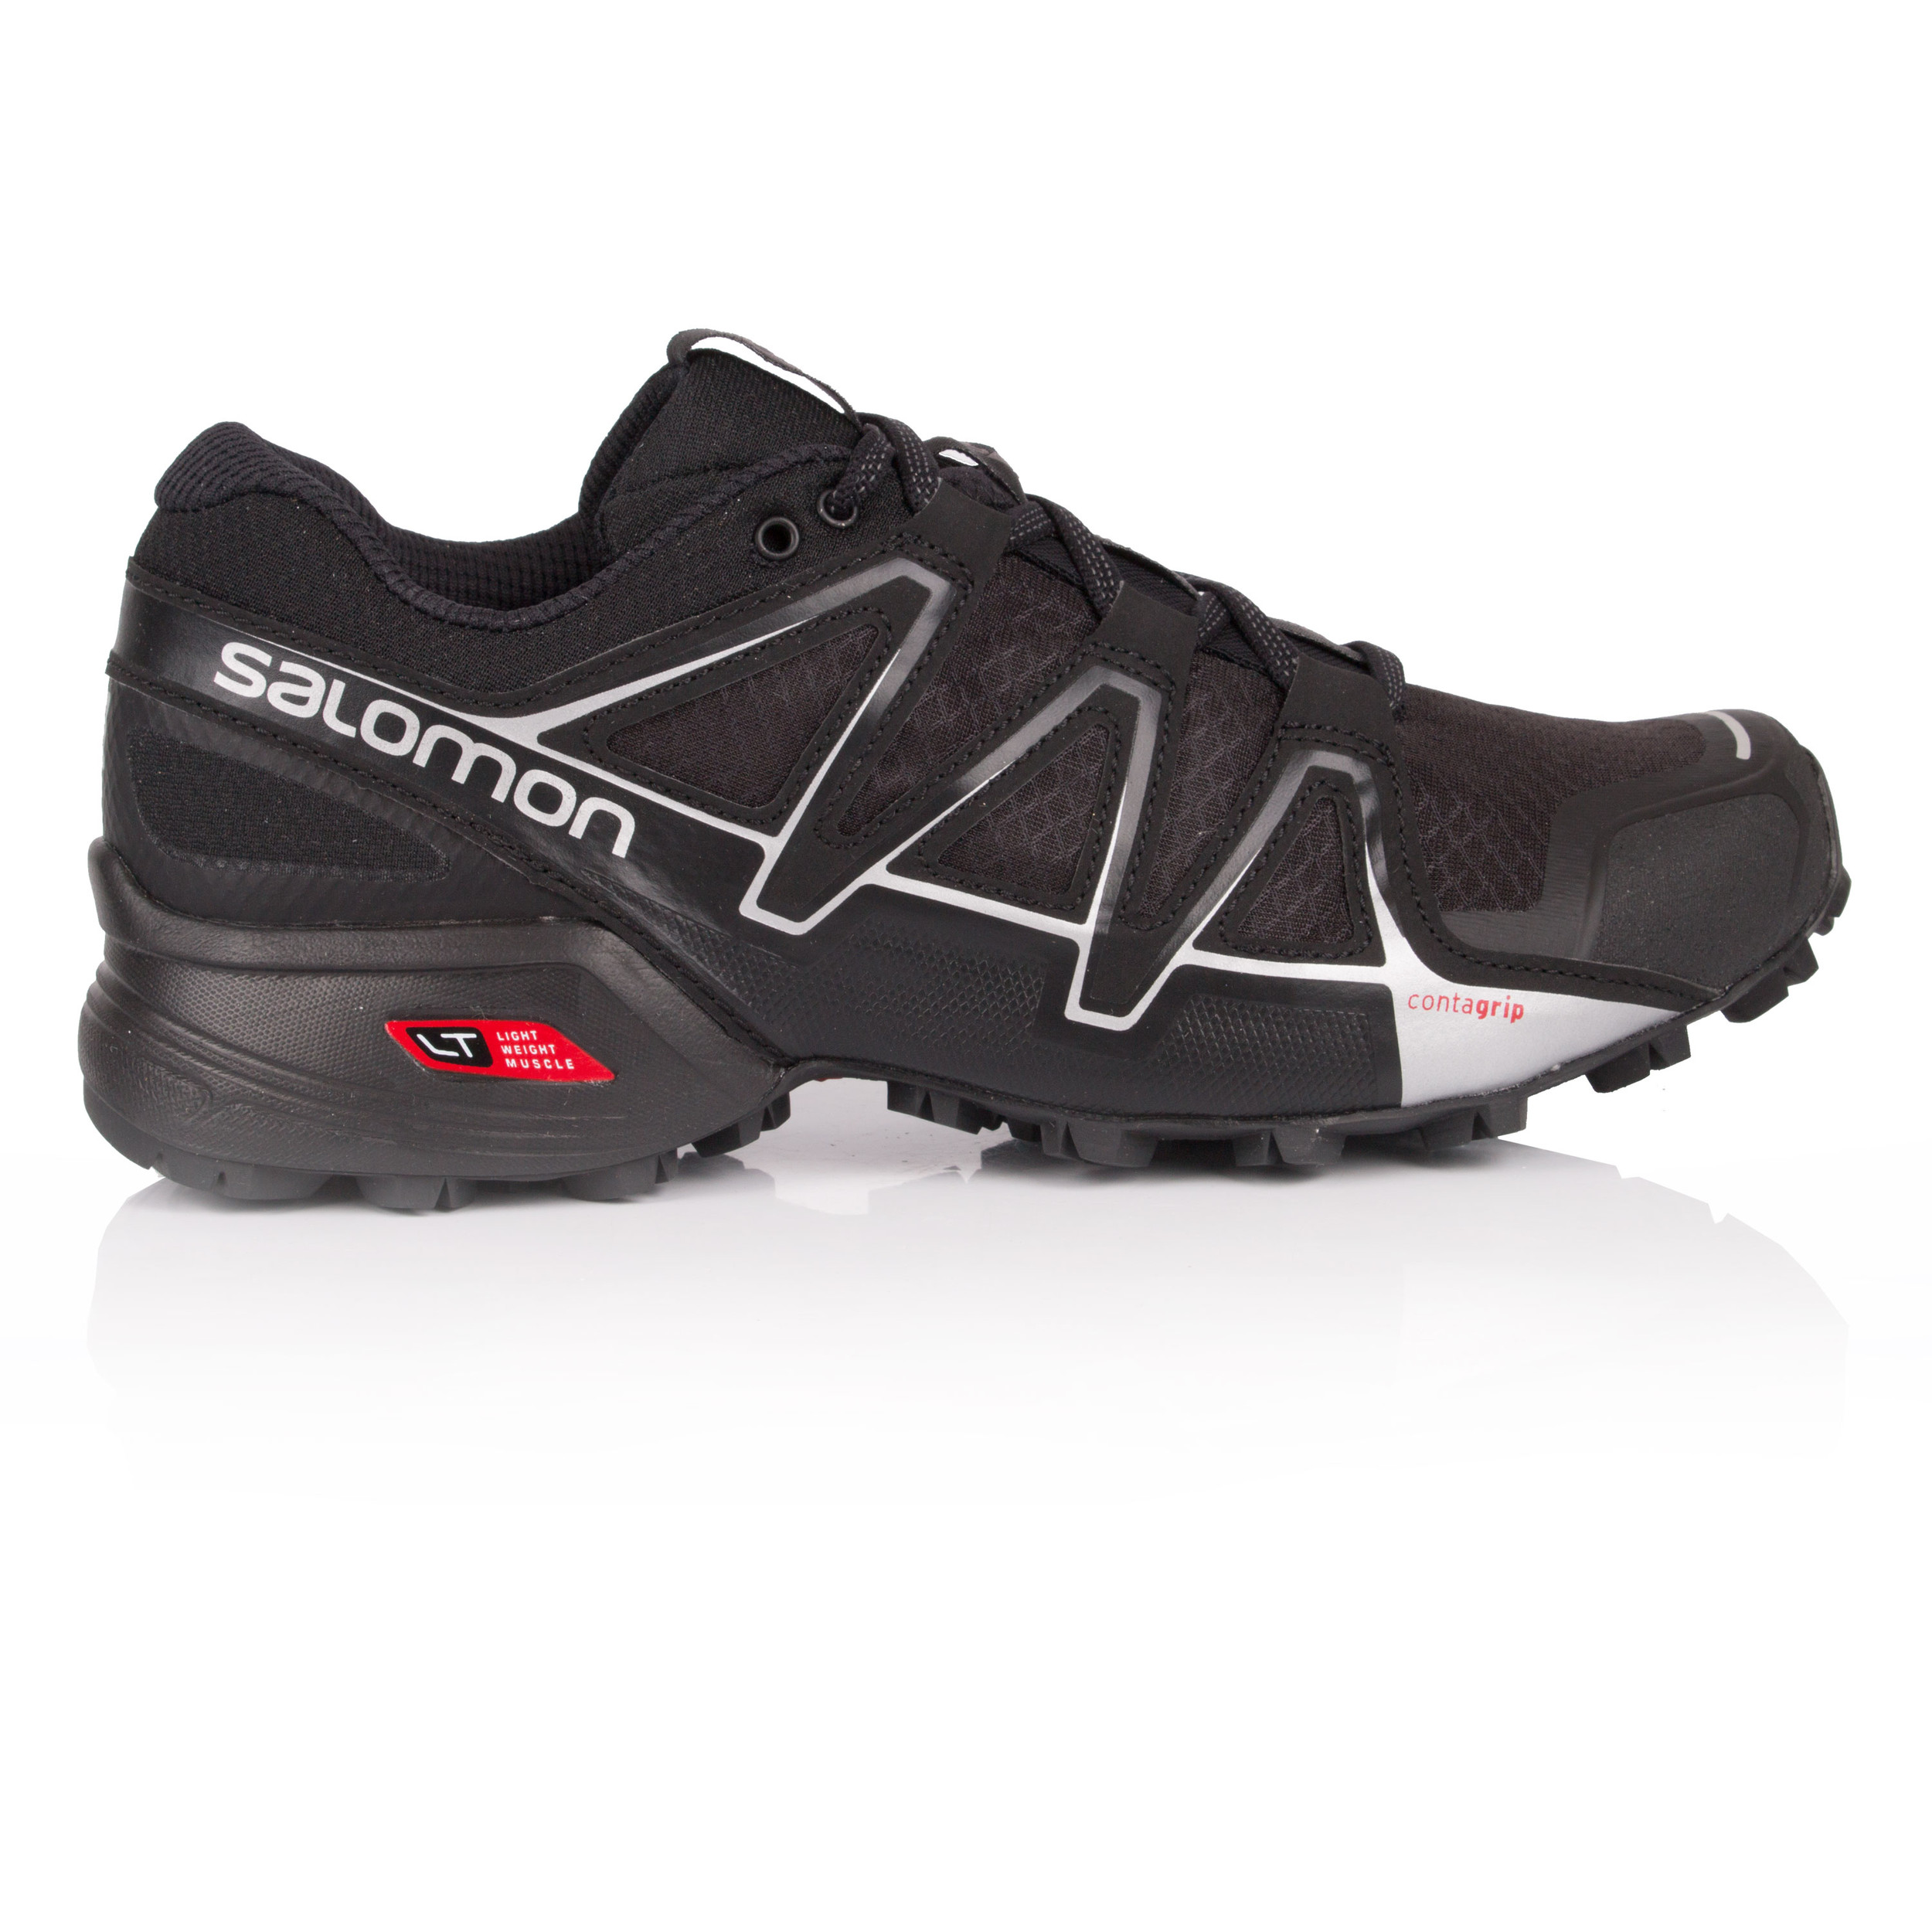 13c80dd006c6 Details about Salomon Mens SPEEDCROSS VARIO 2 trail Running Shoes Trainers  Sneakers Black